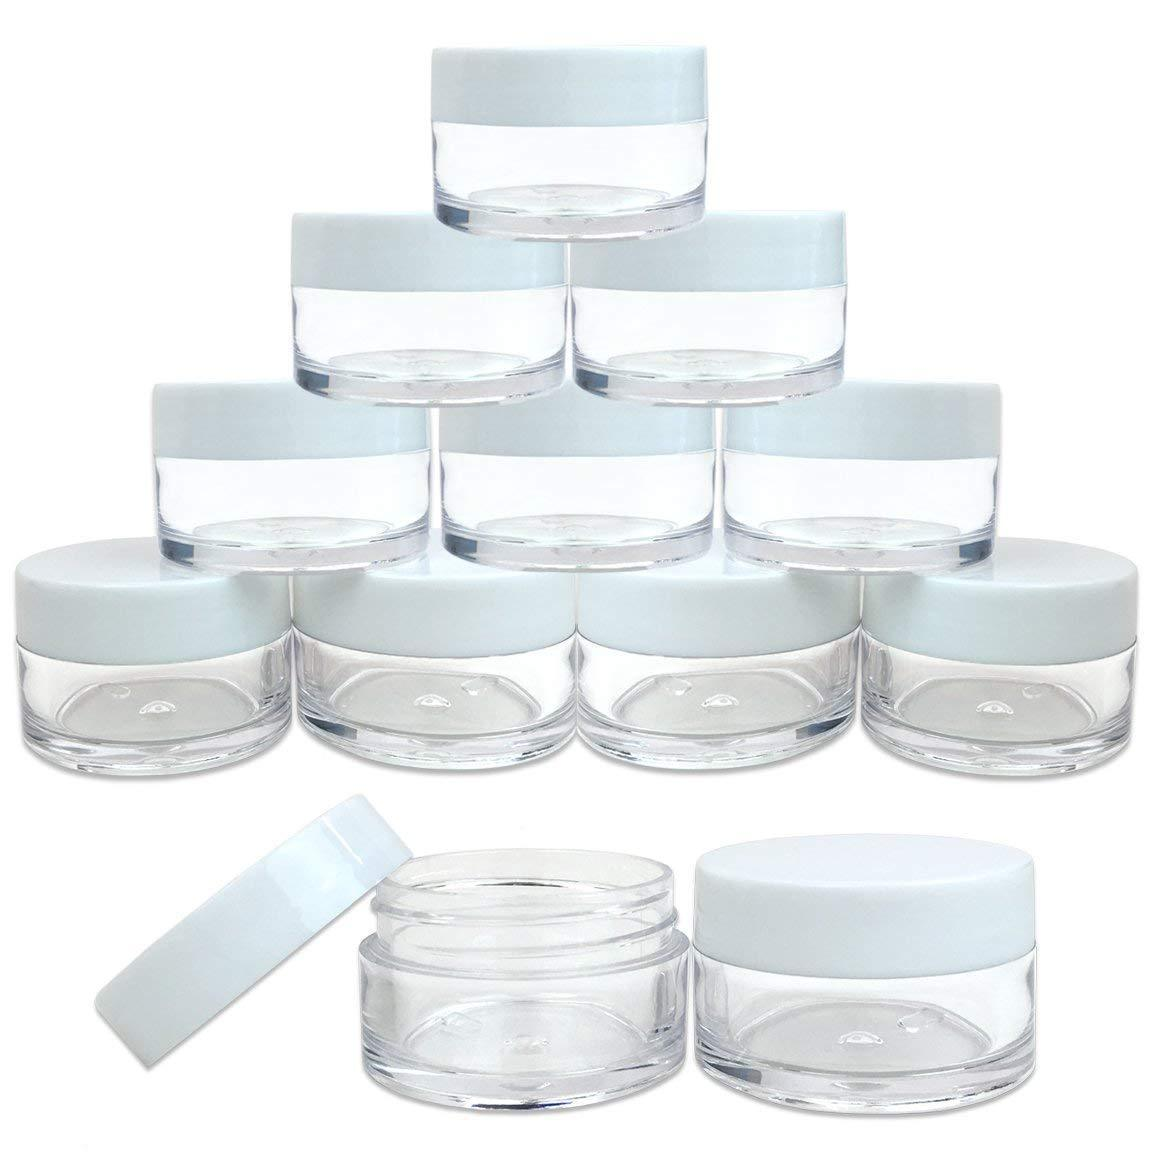 Beauticom 12 Pieces 20G/20ML Round Clear Jars with WHITE Lid